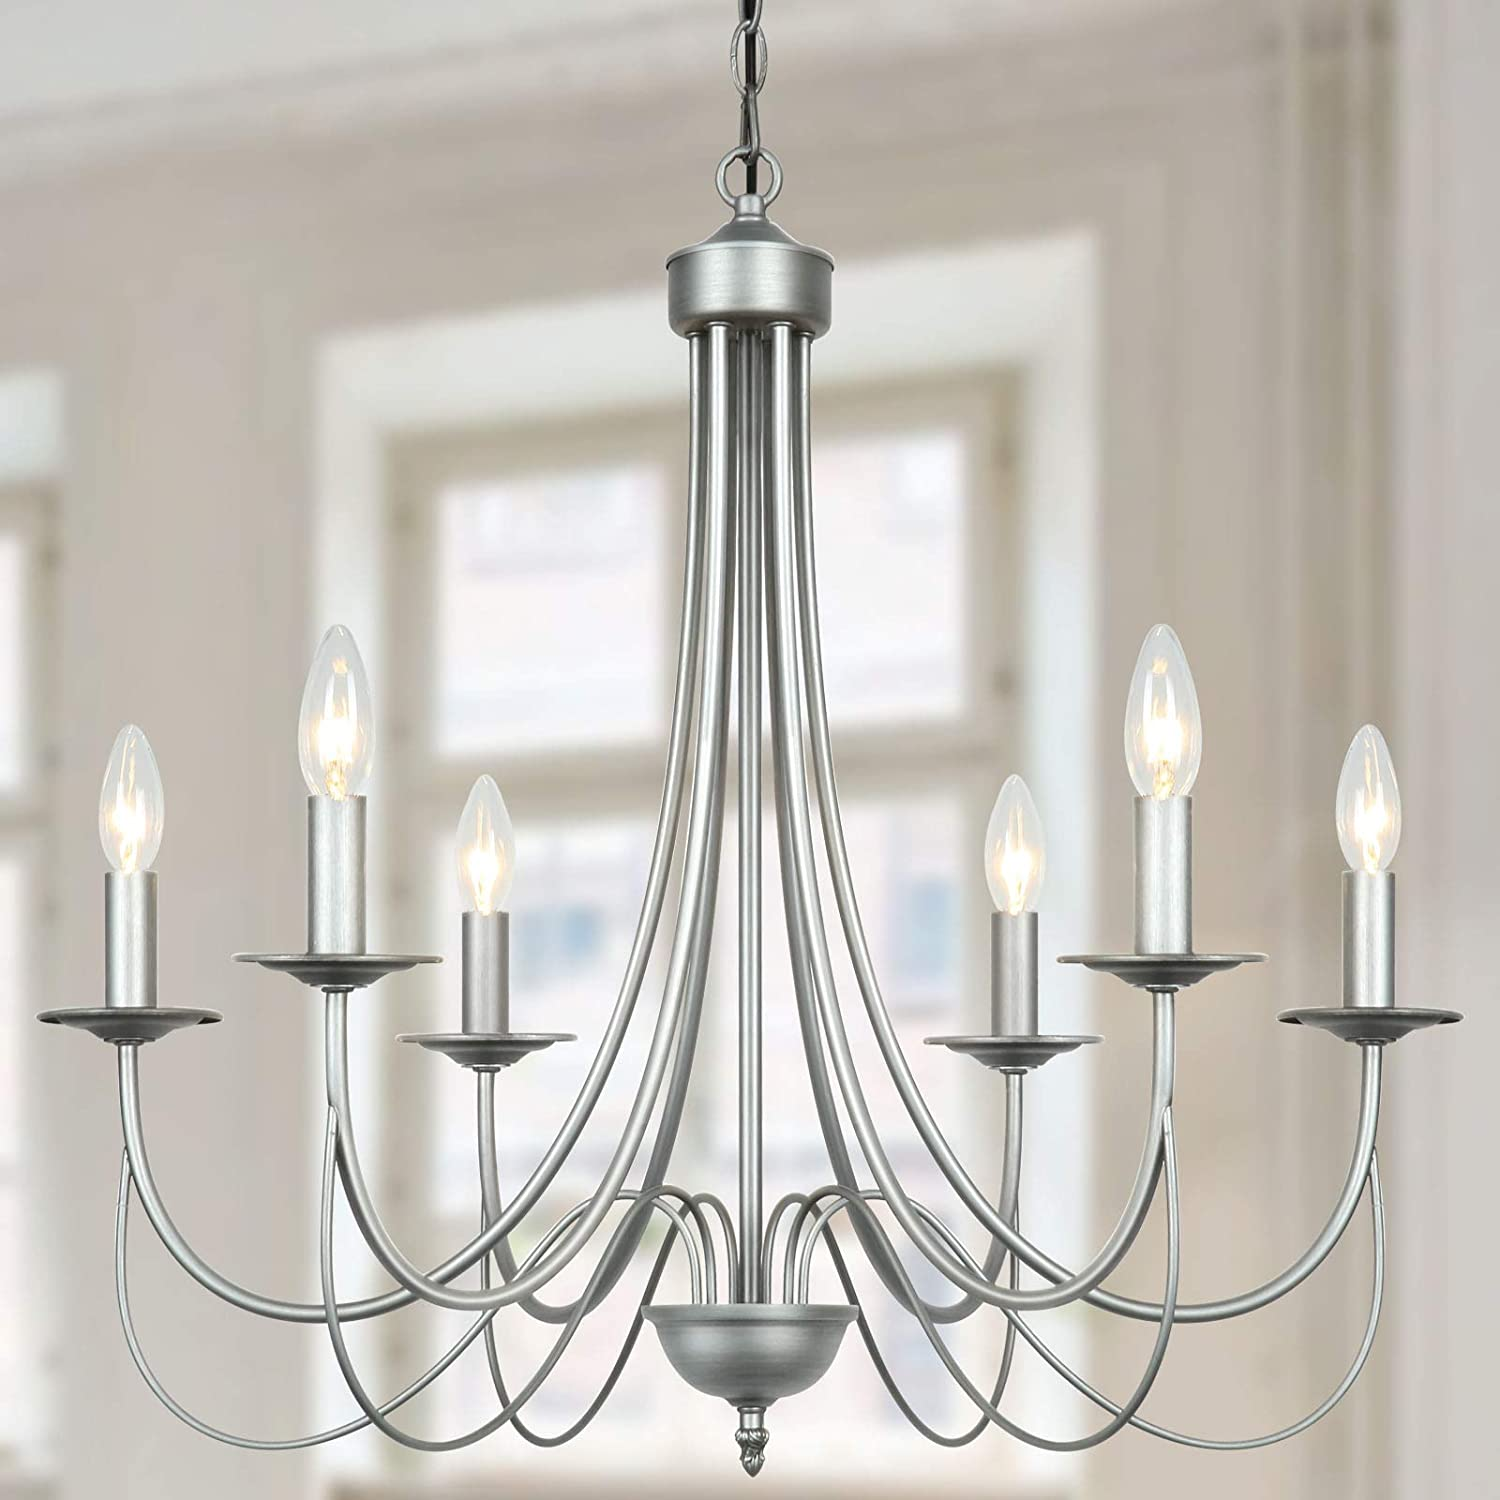 Derksic French Country Chandelier 6-Light Farmhouse Lighting Modern Candle Chandeliers for Dining Room Living Room Bedroom Kitchen Island Foyer, Brushed Silver Gray Finish